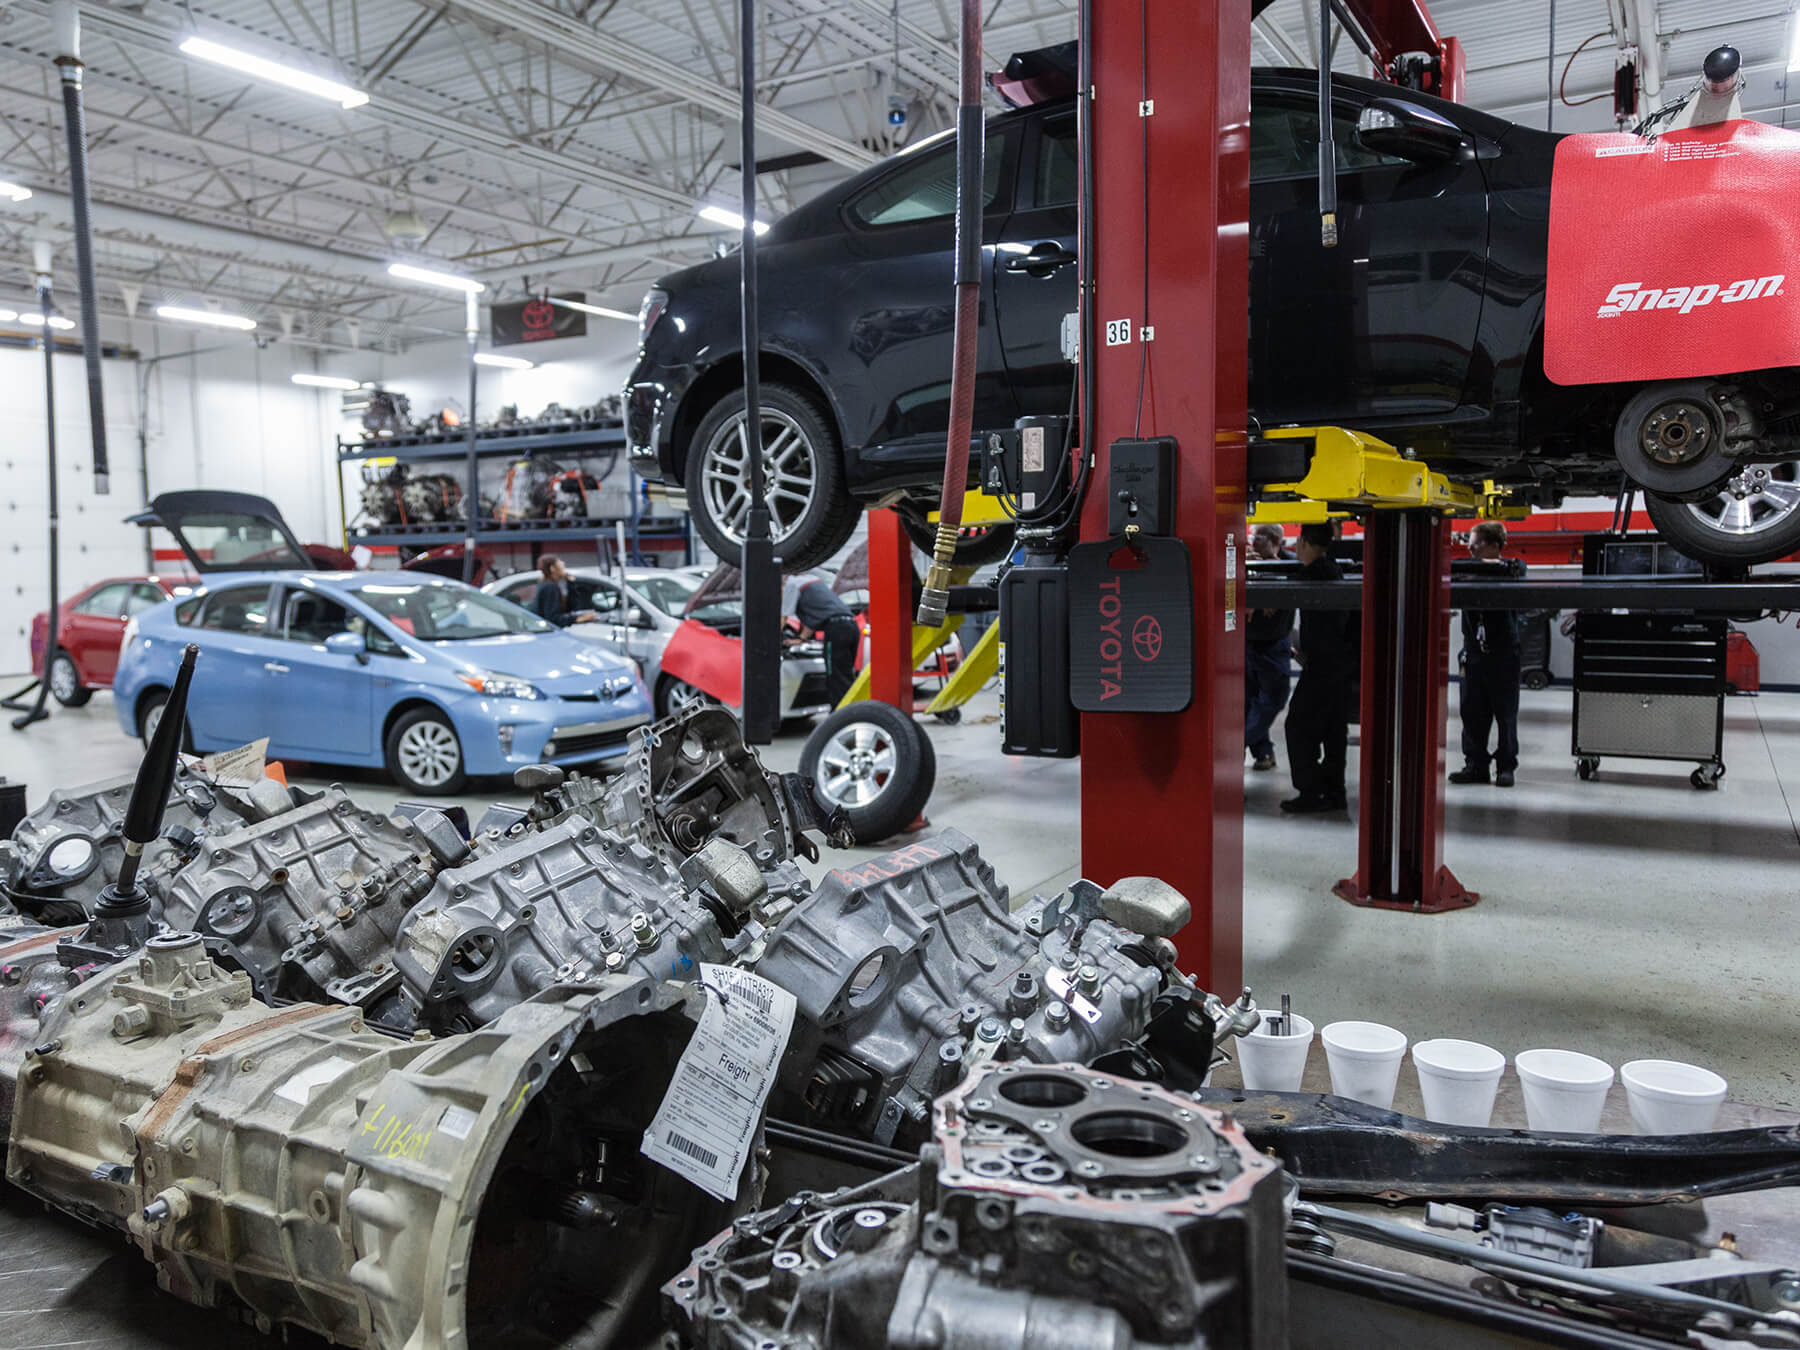 Photo of engine parts and Toyota cars on lifts in the Toyota lab at the Exton campus